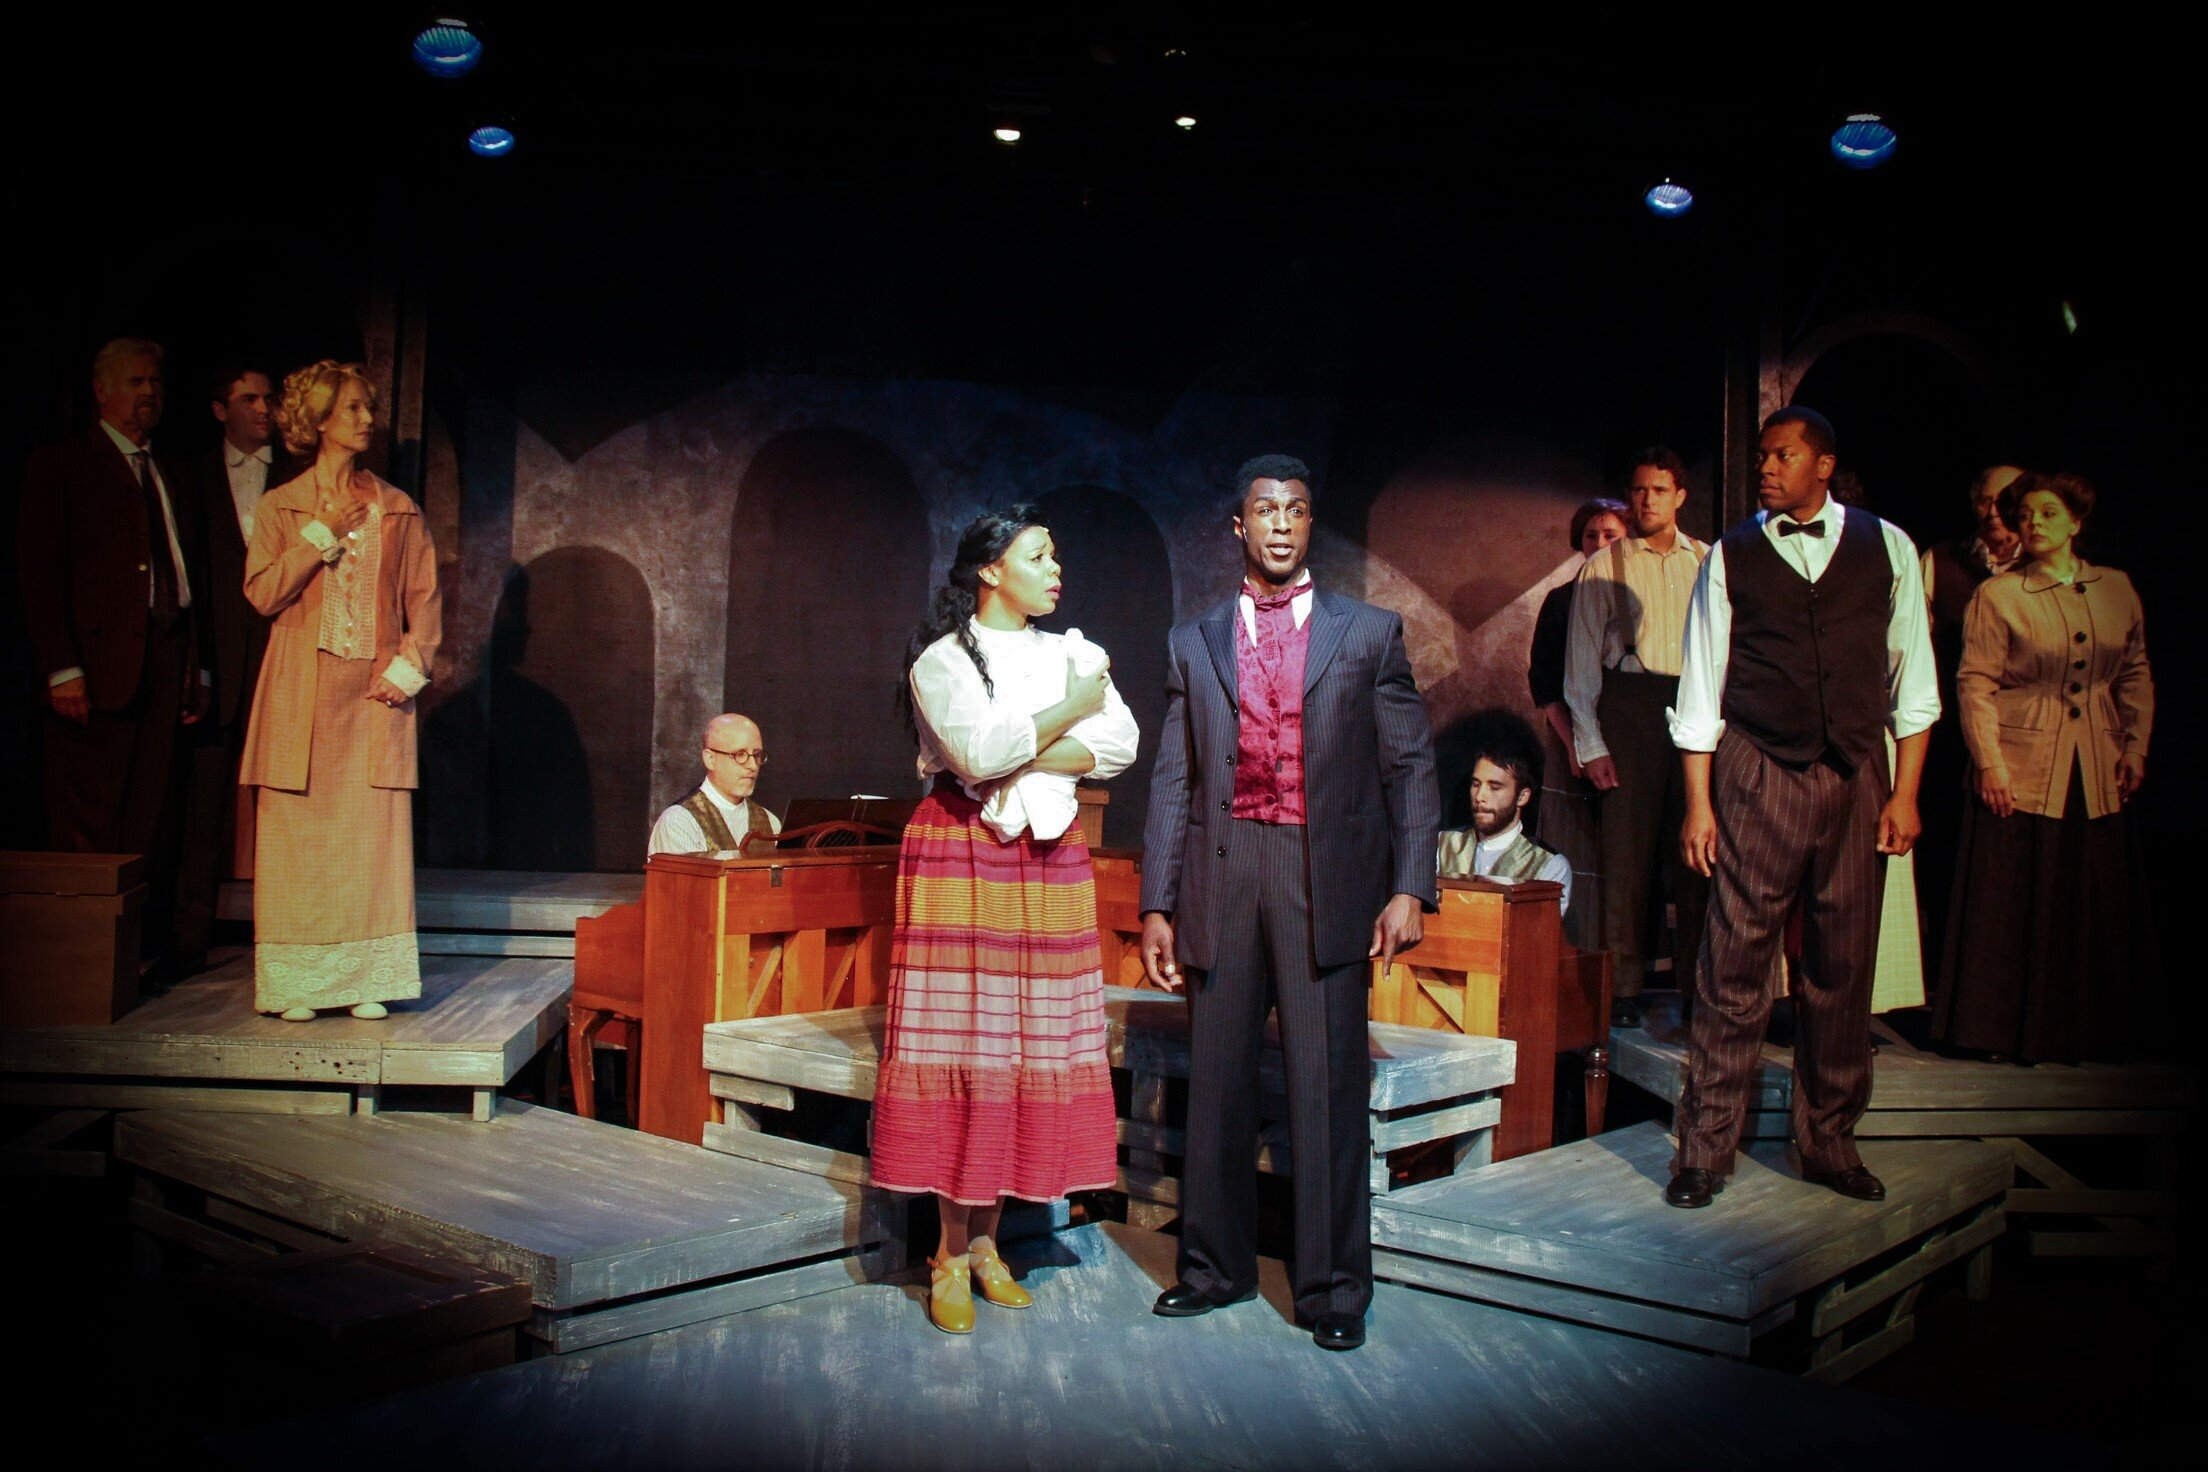 Sarah (Soara-Joye Ross), Coalhouse Walker, Jr. (Ezekiel Andrew), center, and the cast of  Ragtime